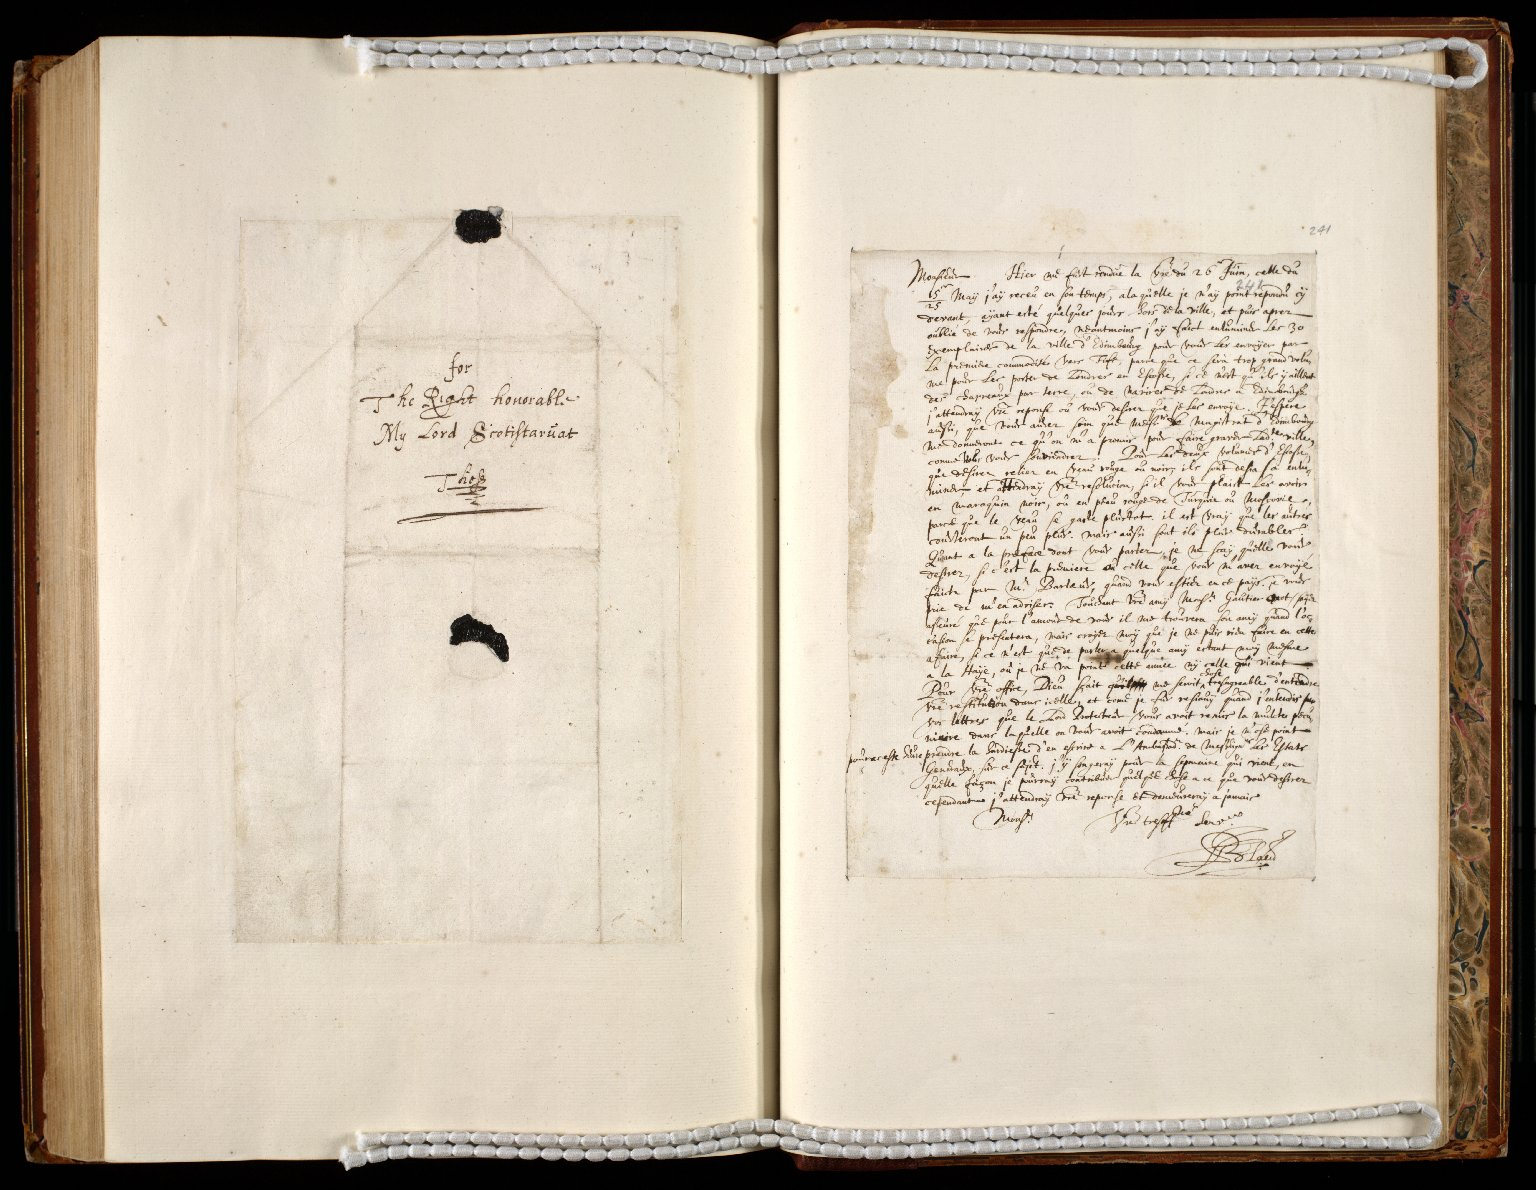 [A collection of ALS to Sir John Scot, Lord Scotstarvet, from W.J. and Joan Blaeu, Amsterdam] [27 of 27]